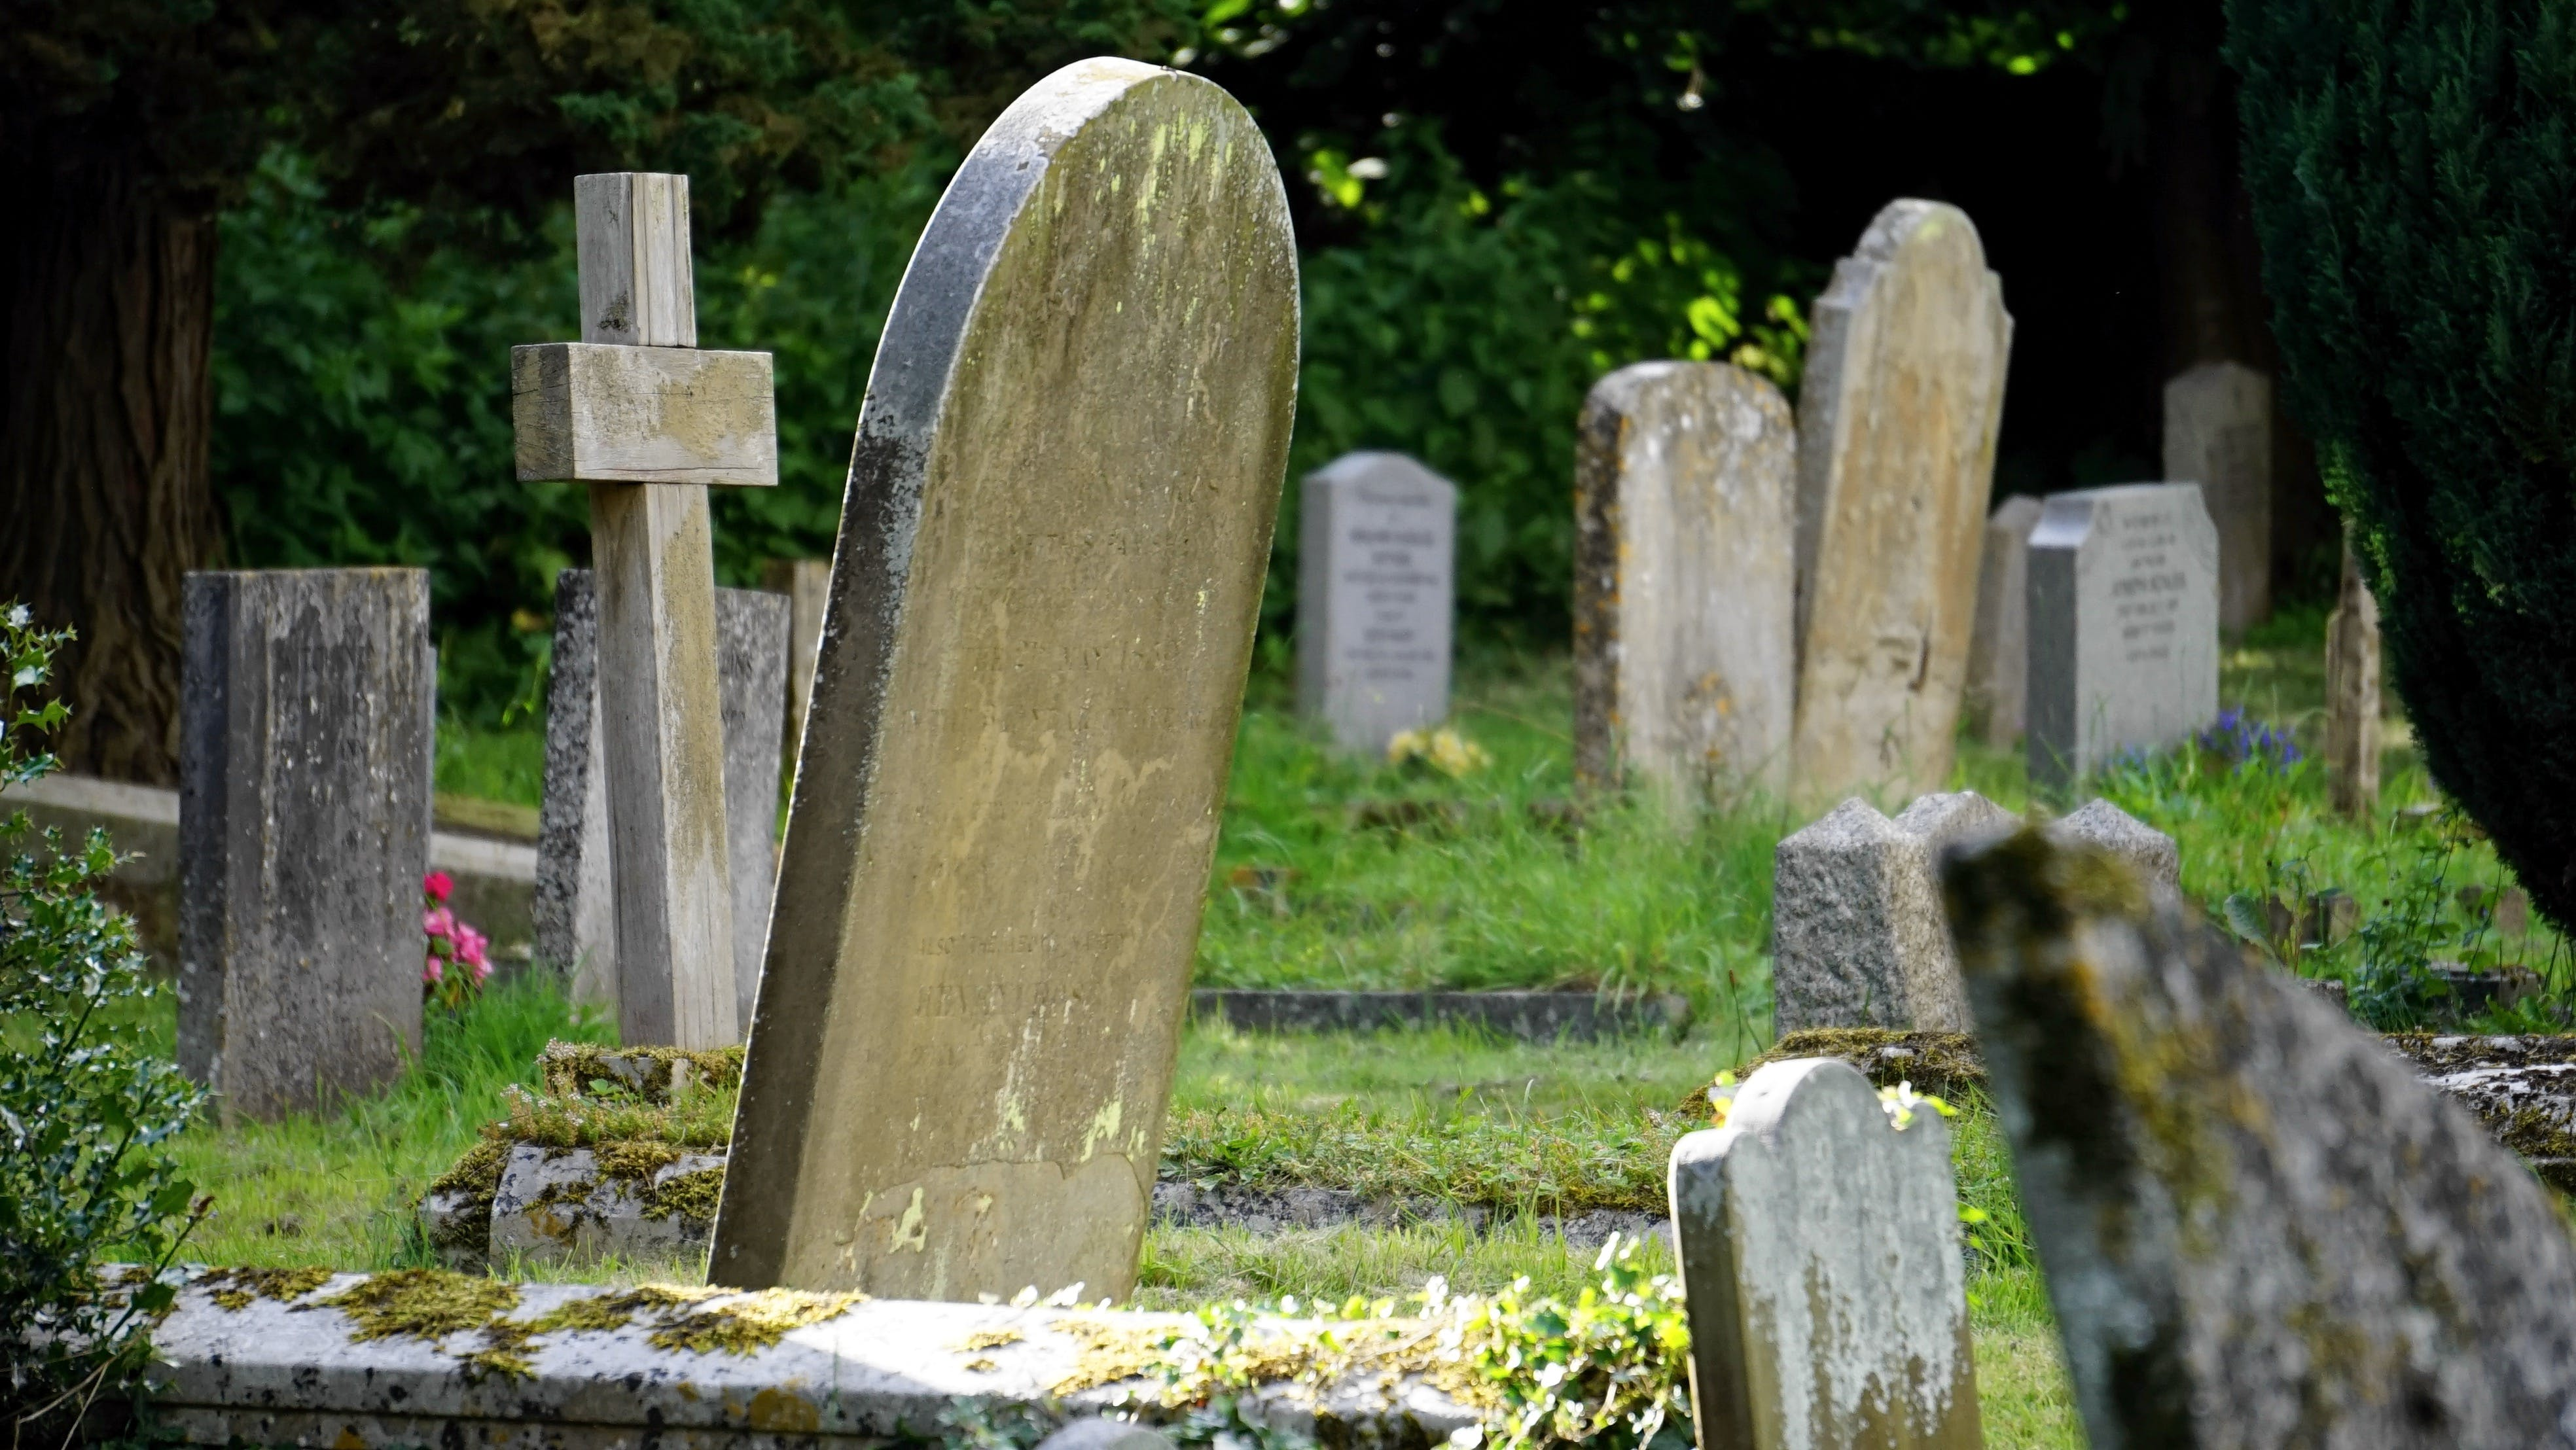 Close-up Photography of Concrete Tombstones